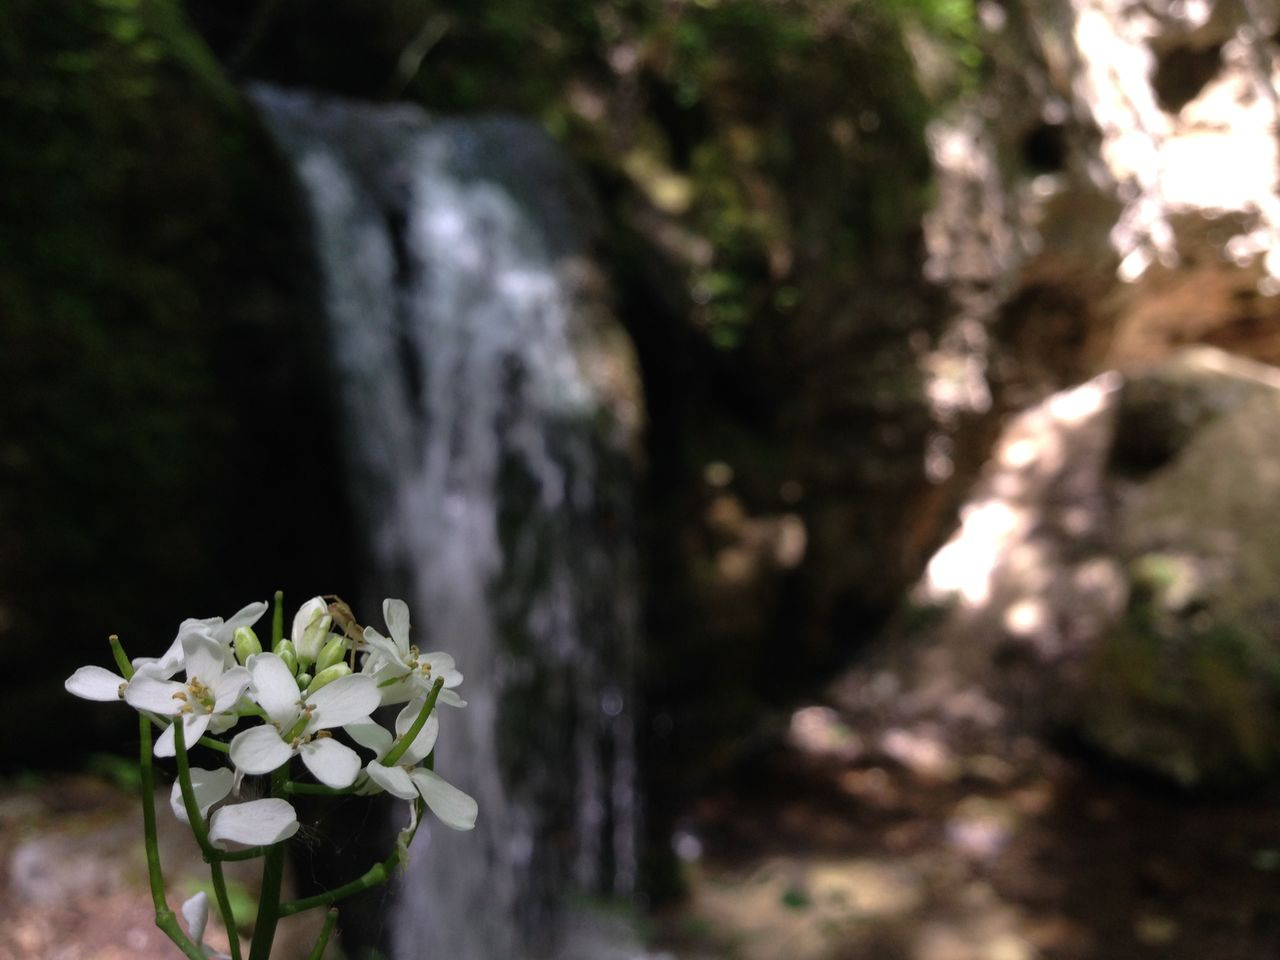 Close-up of white flowers blooming with waterfall in background